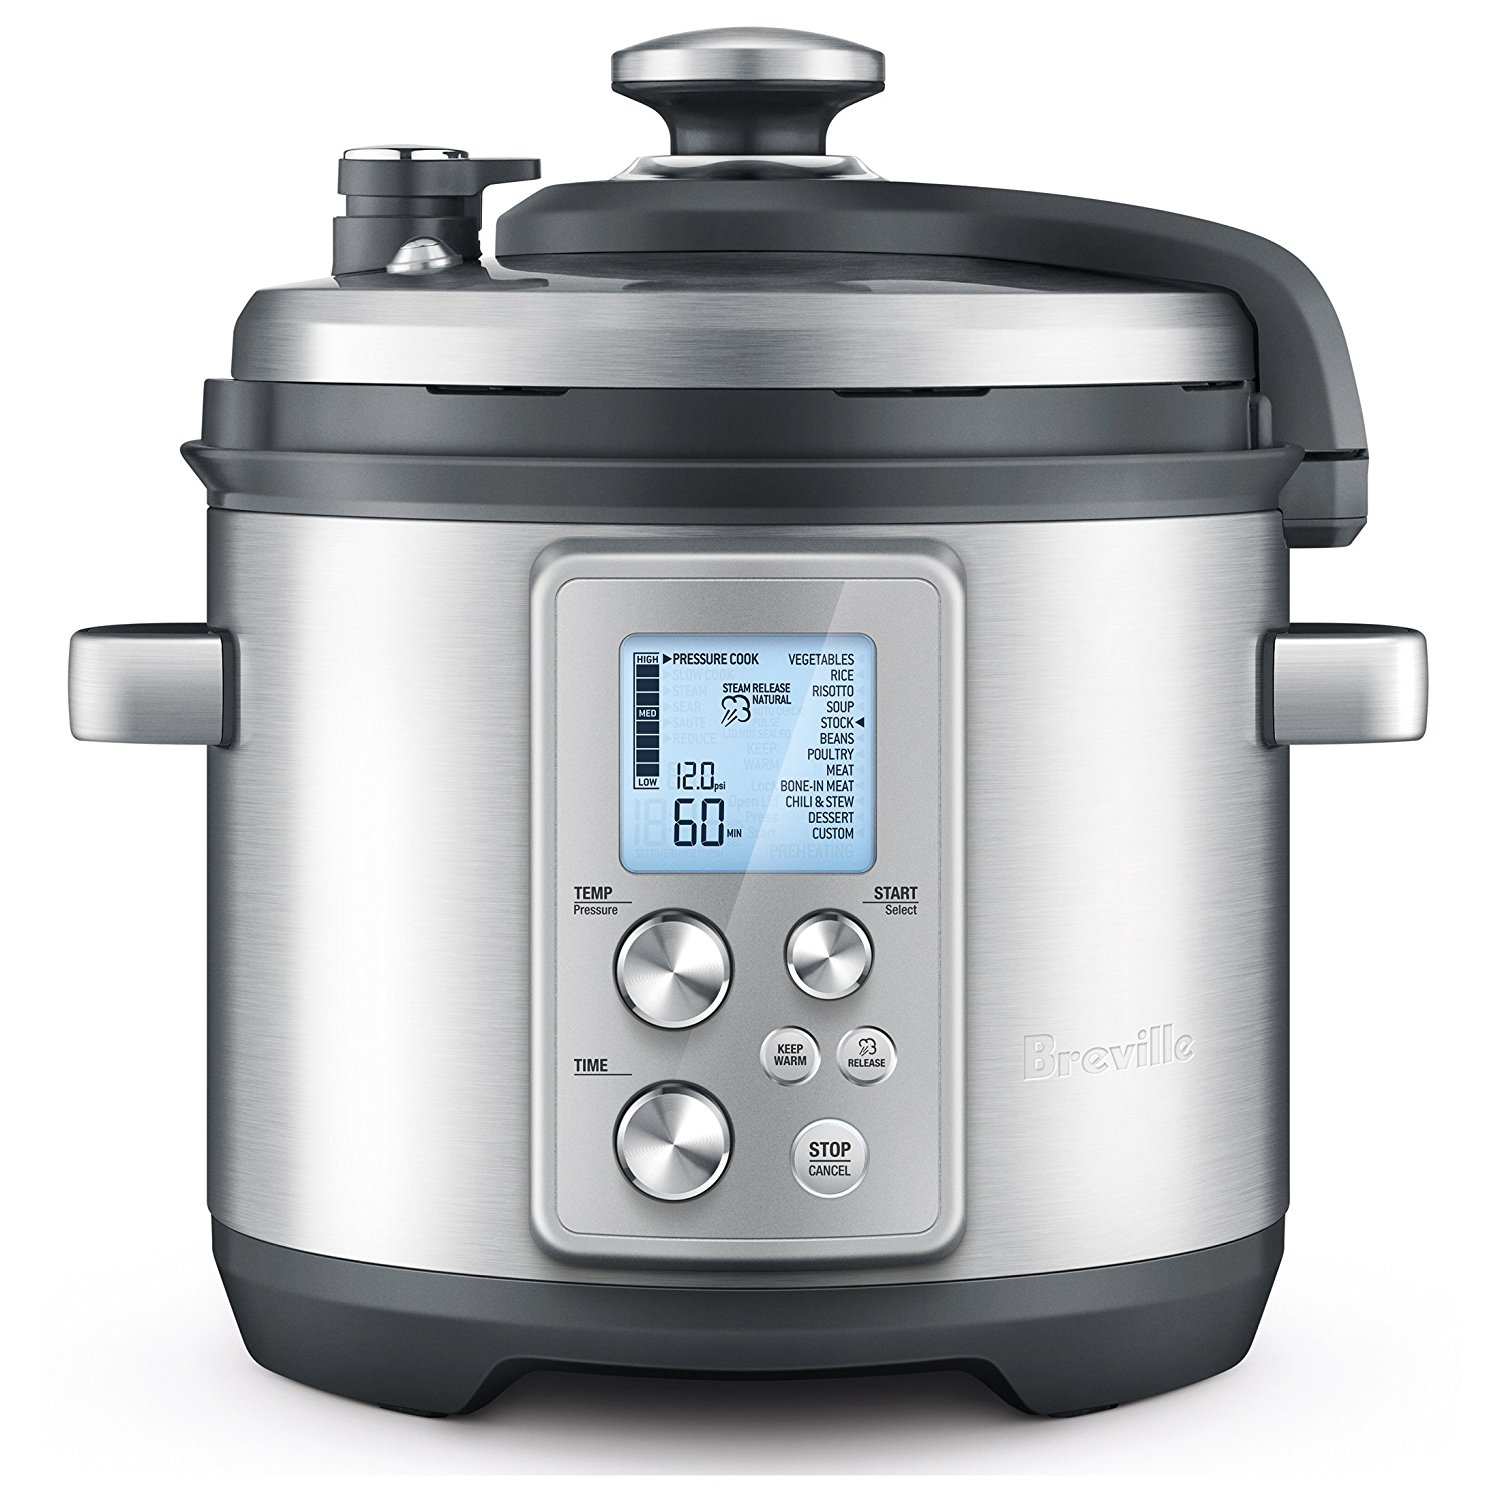 Instant Pot Vs. Pressure Cooker: Which Is Better?